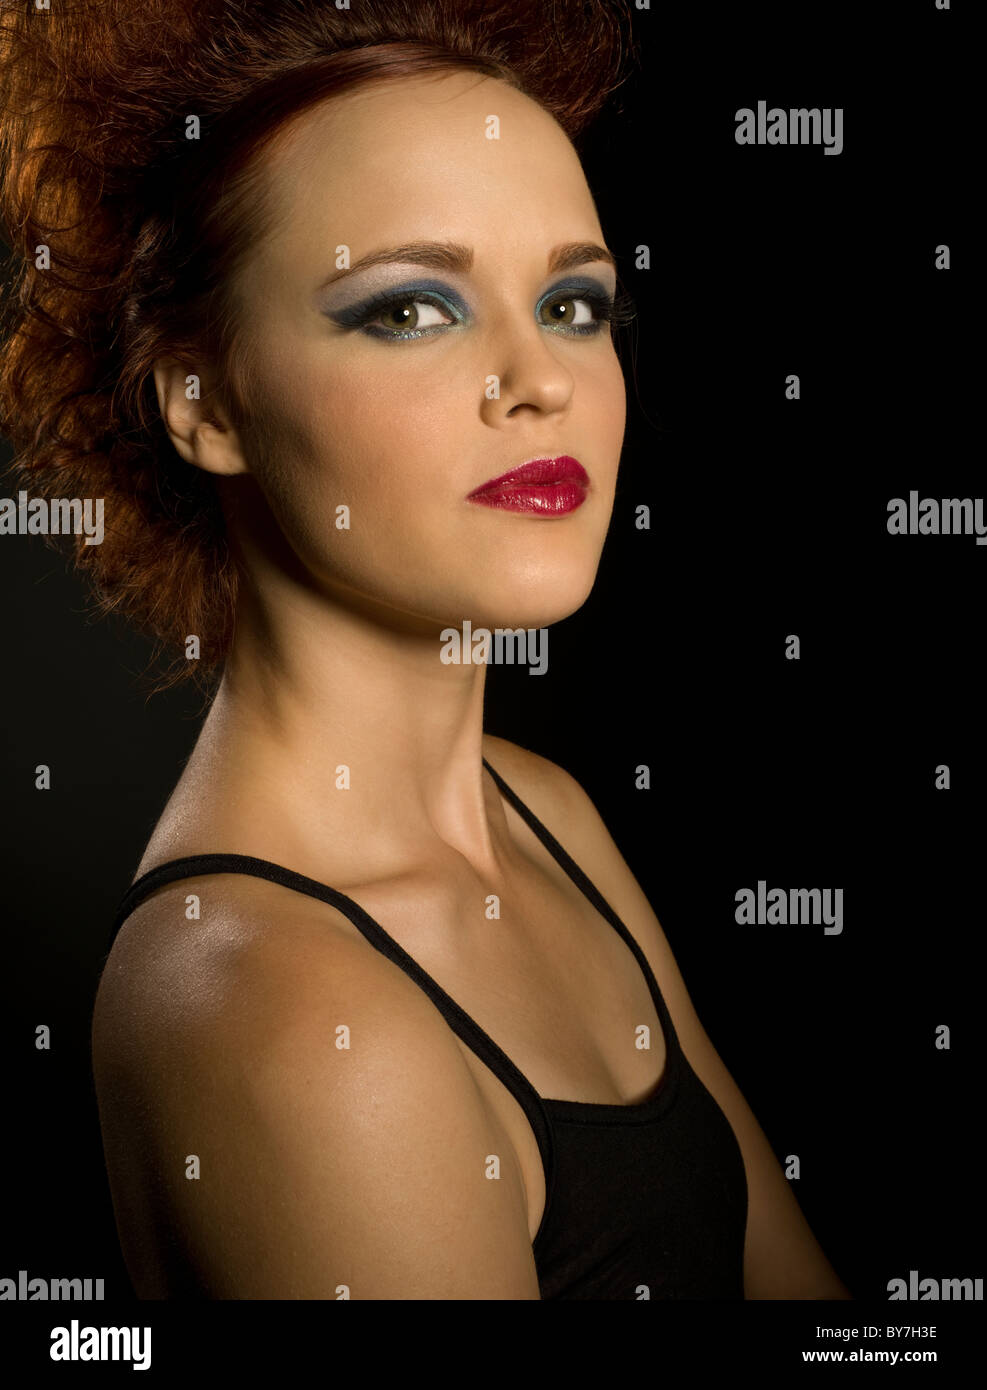 Fiery red head with eyeshadow and lipstick - Stock Image